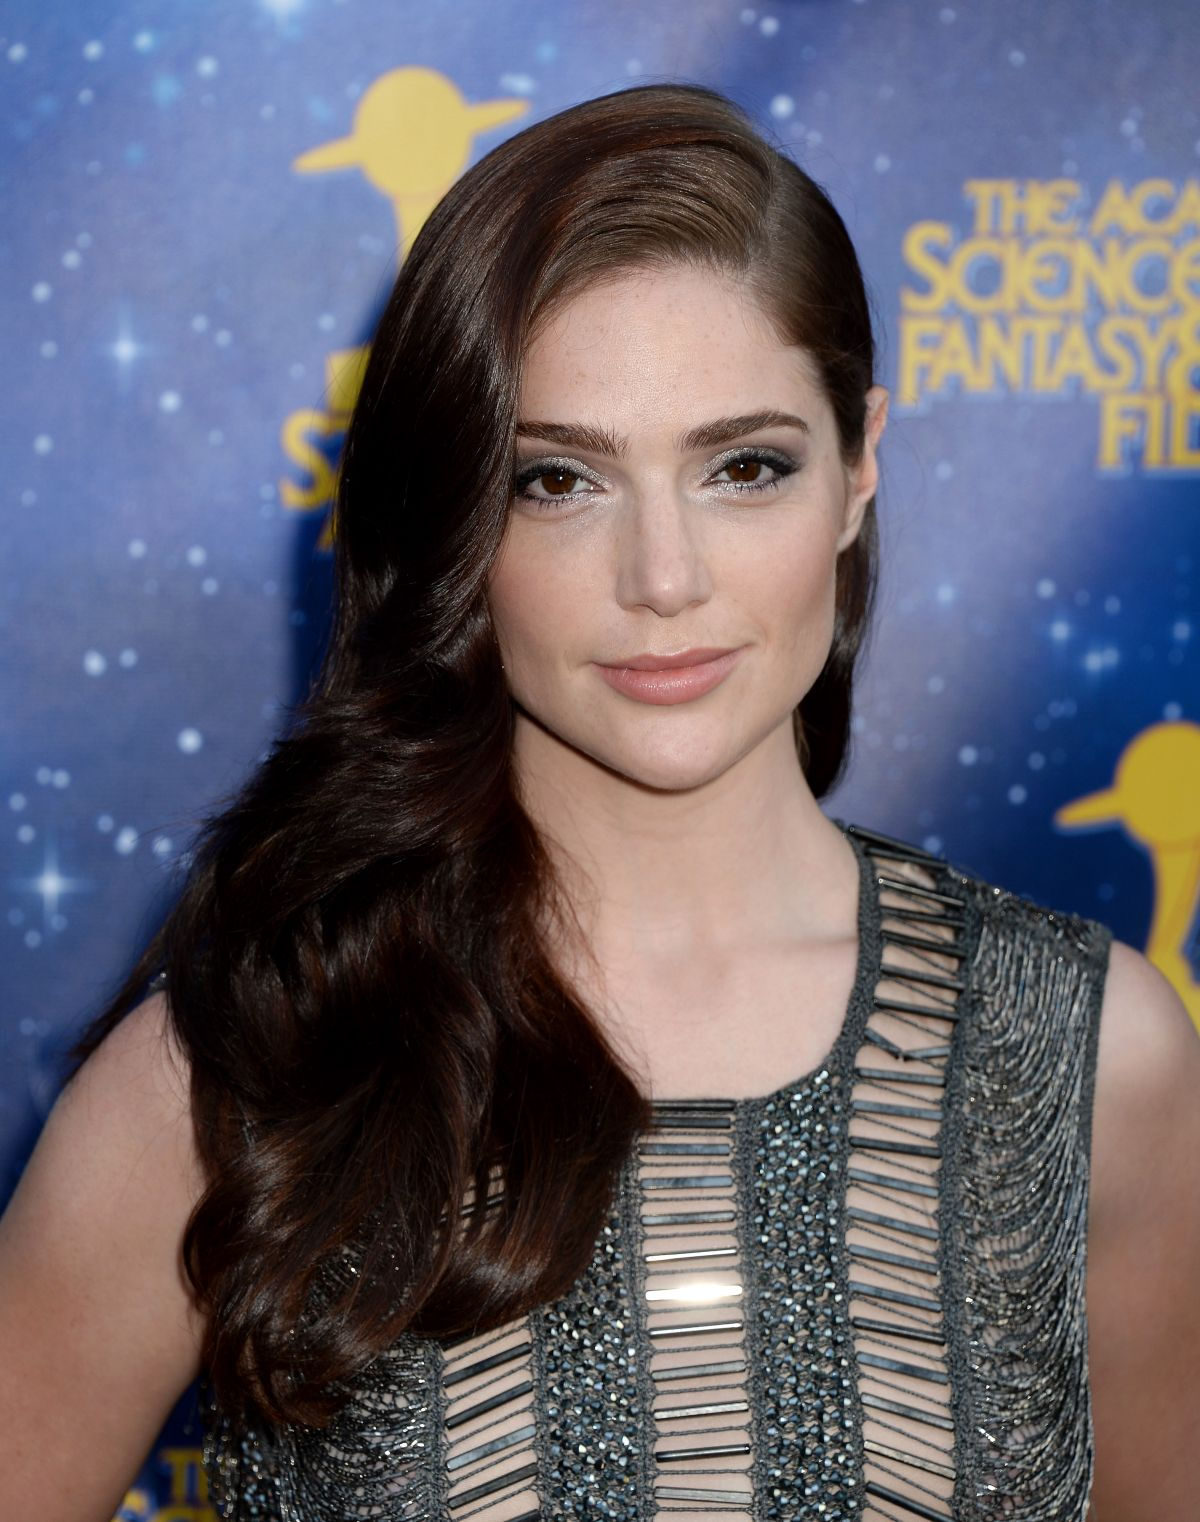 'Amateur Night' actress Janet Montgomery at 42nd Saturn Awards 2016 in Burbank